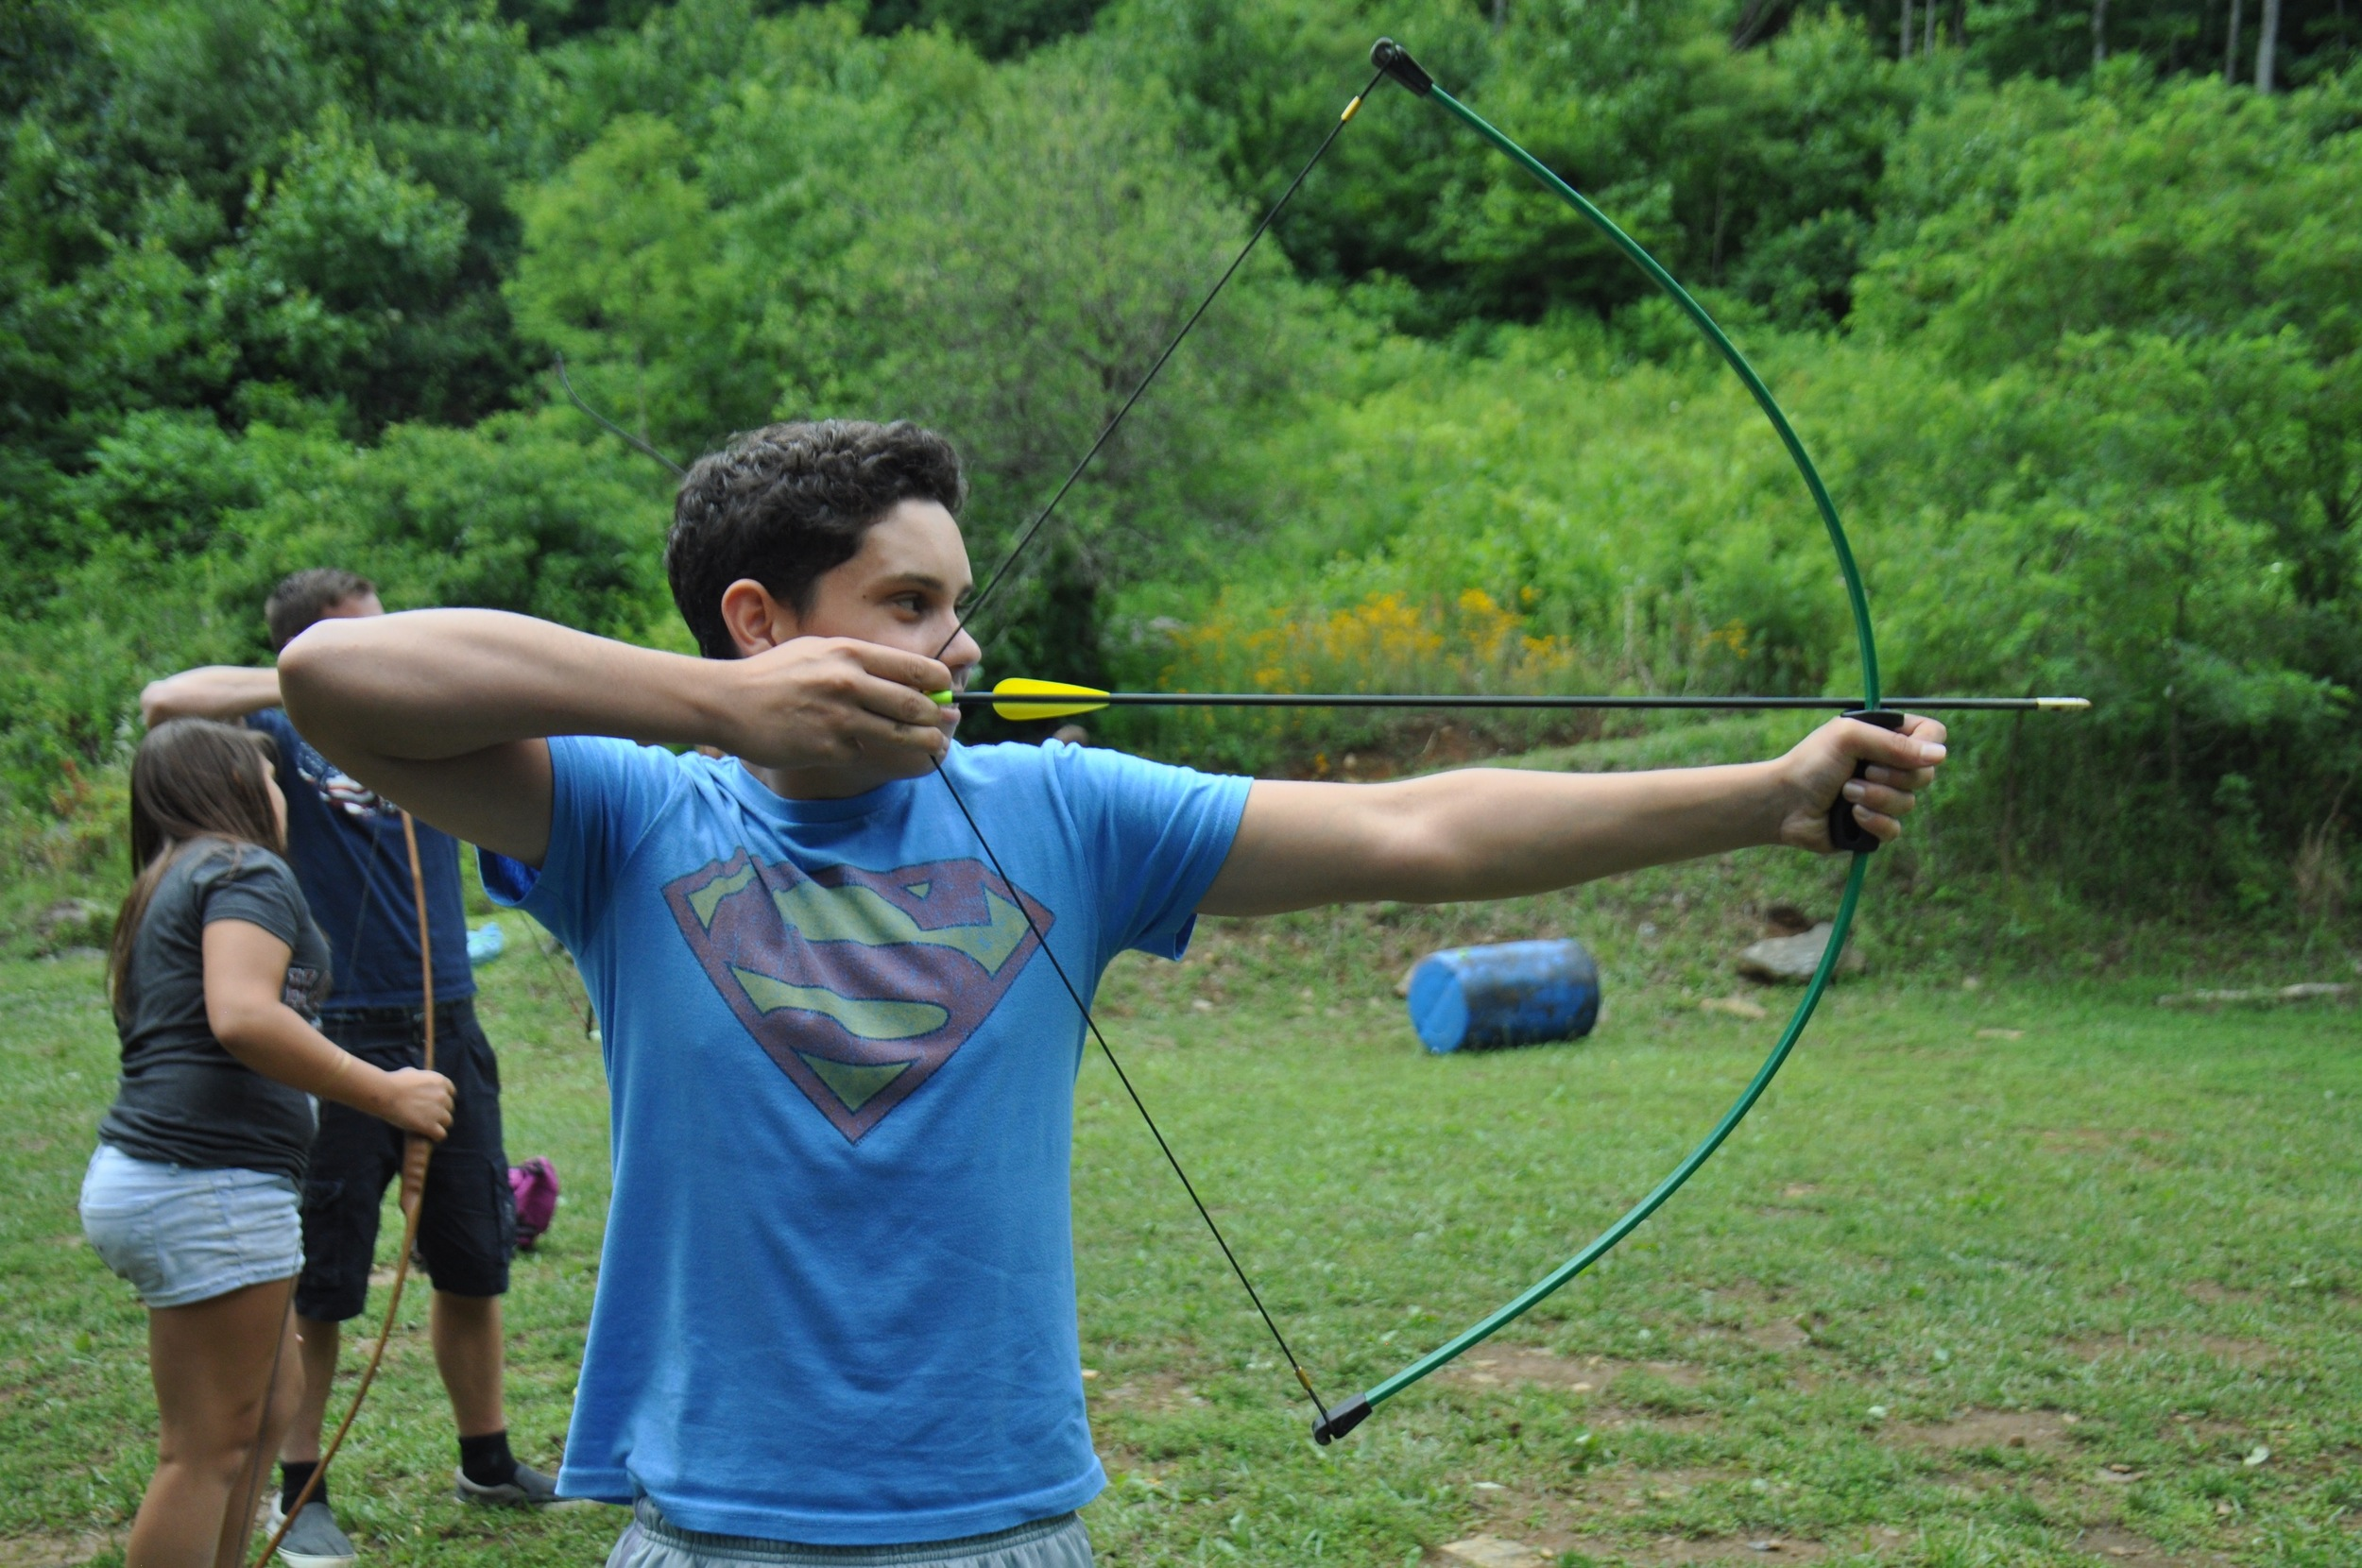 ethan-draws-back-his-bow-and-aims-for-the-bullseye.jpg